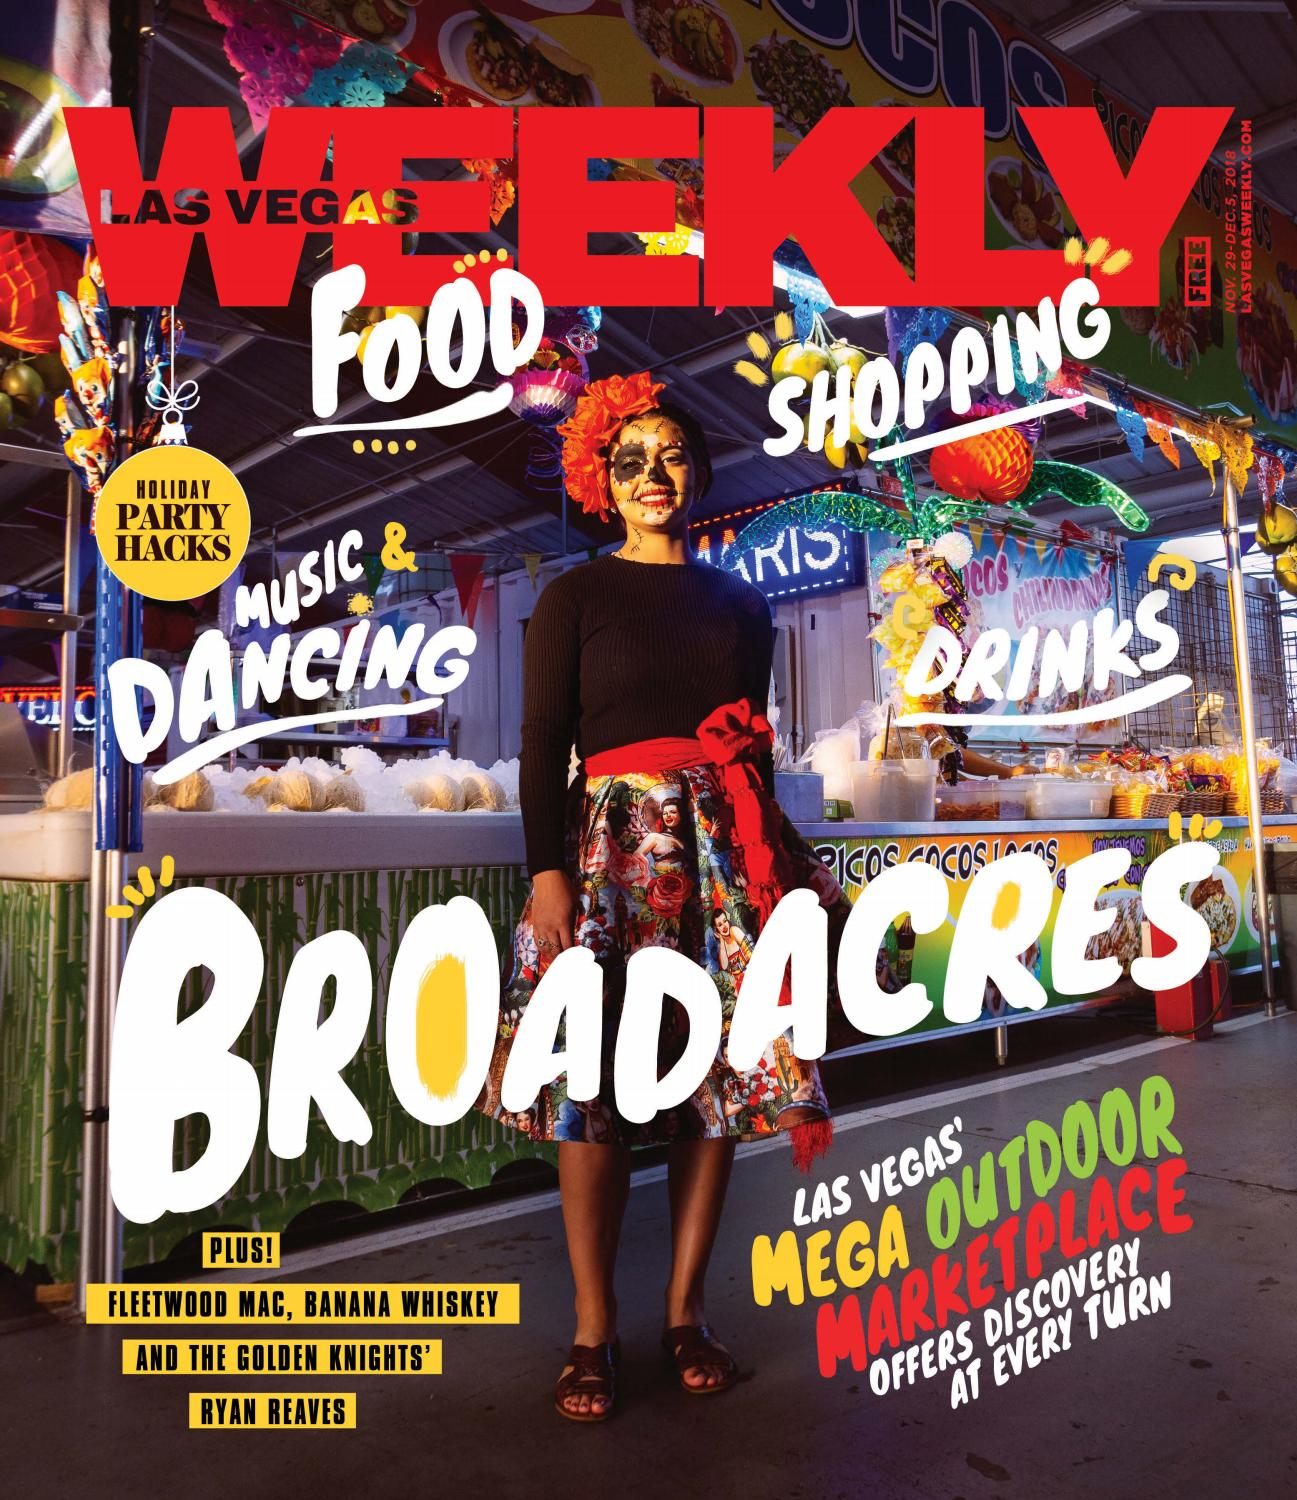 928830d776f0 2018-11-29 - Las Vegas Weekly by Greenspun Media Group - issuu